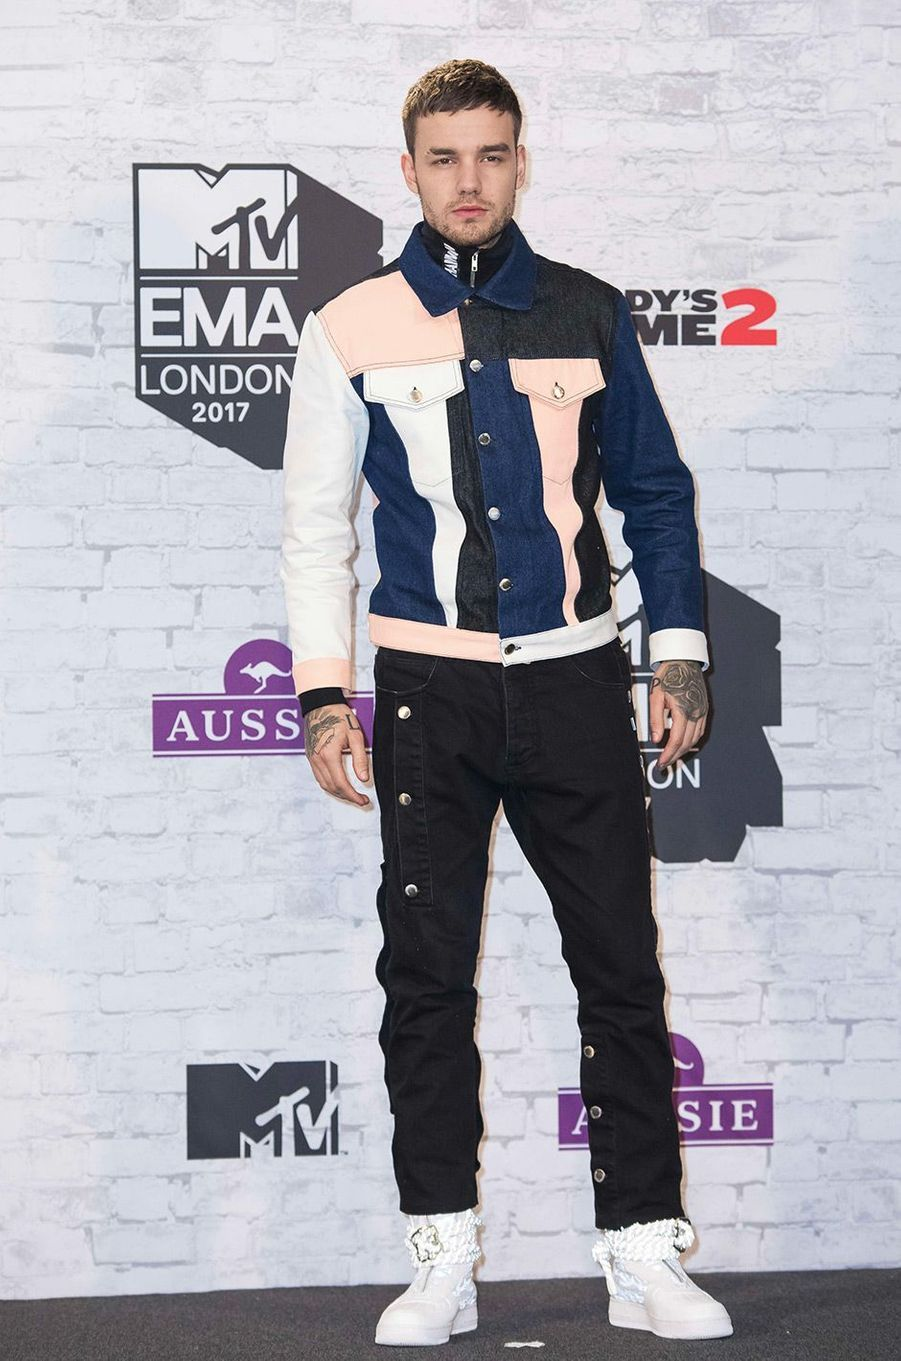 Liam Payne aux MTV Europe Music Awards dimanche 12 novembre, à Londres